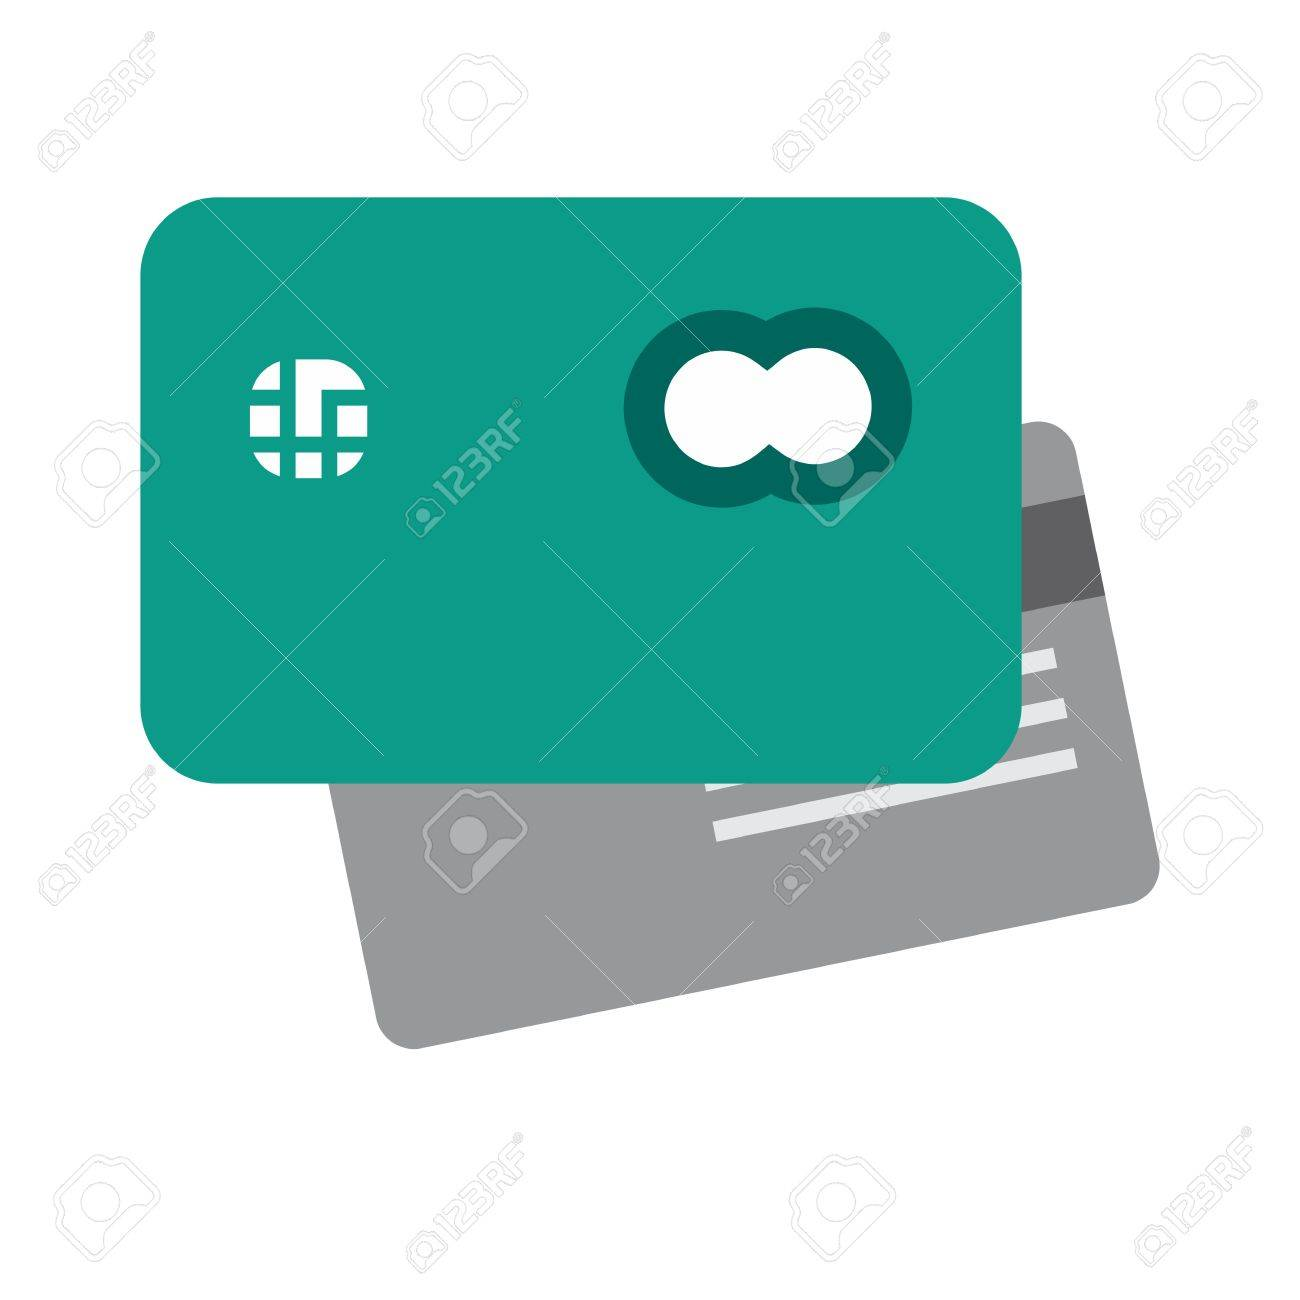 Paypal business debit card limit images free business cards visa business debit card choice image free business cards card credit debit card visa card icon magicingreecefo Images